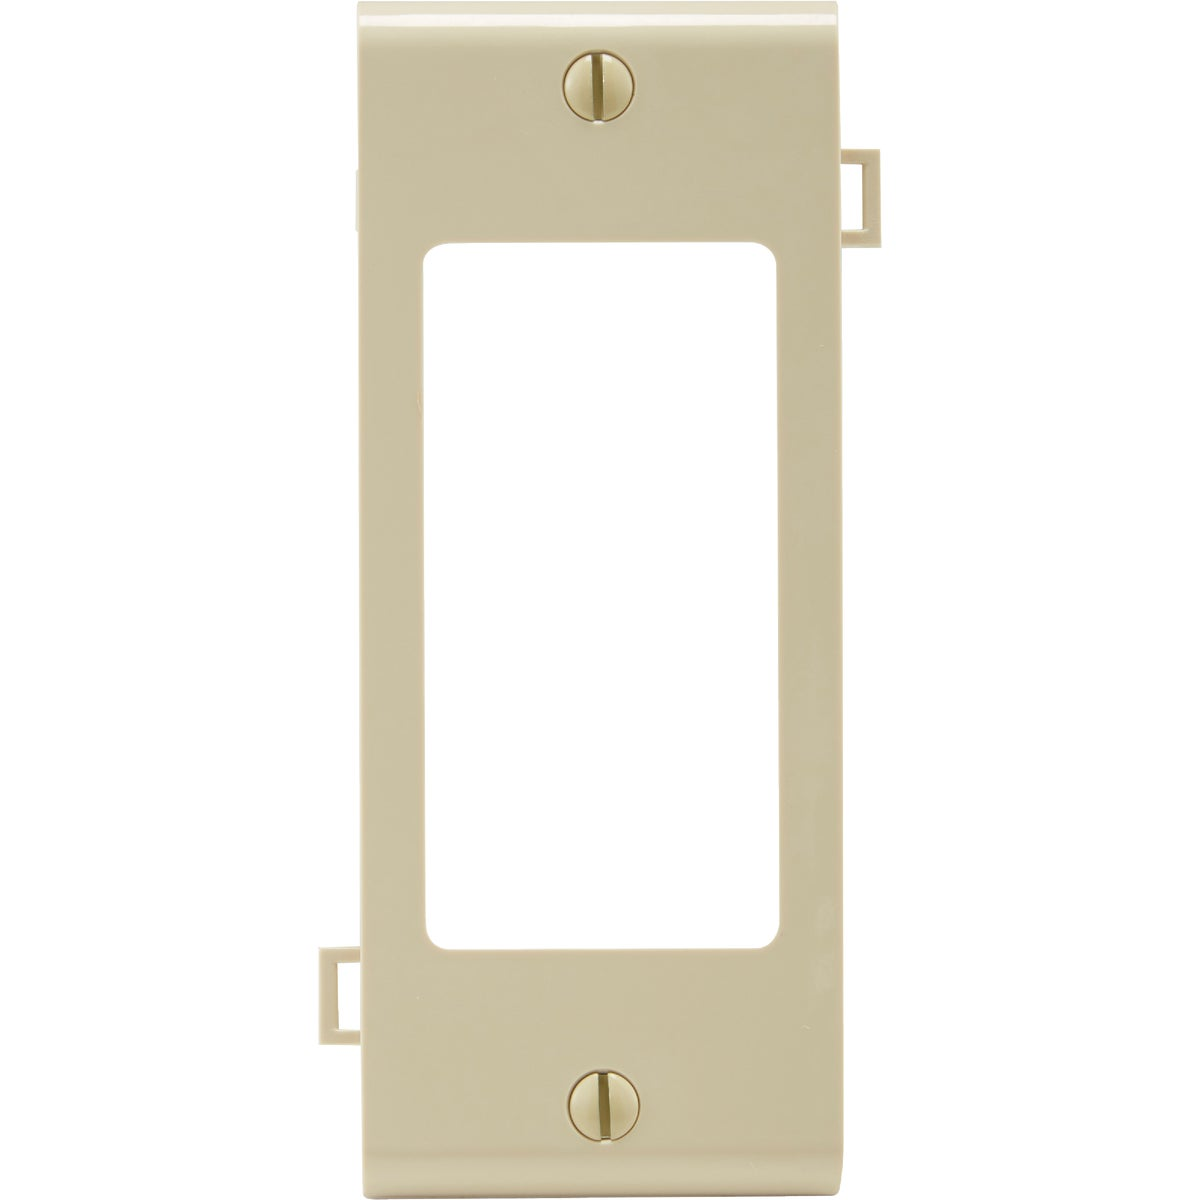 IV GFI CENTER PLATE - PSC26I by Leviton Mfg Co